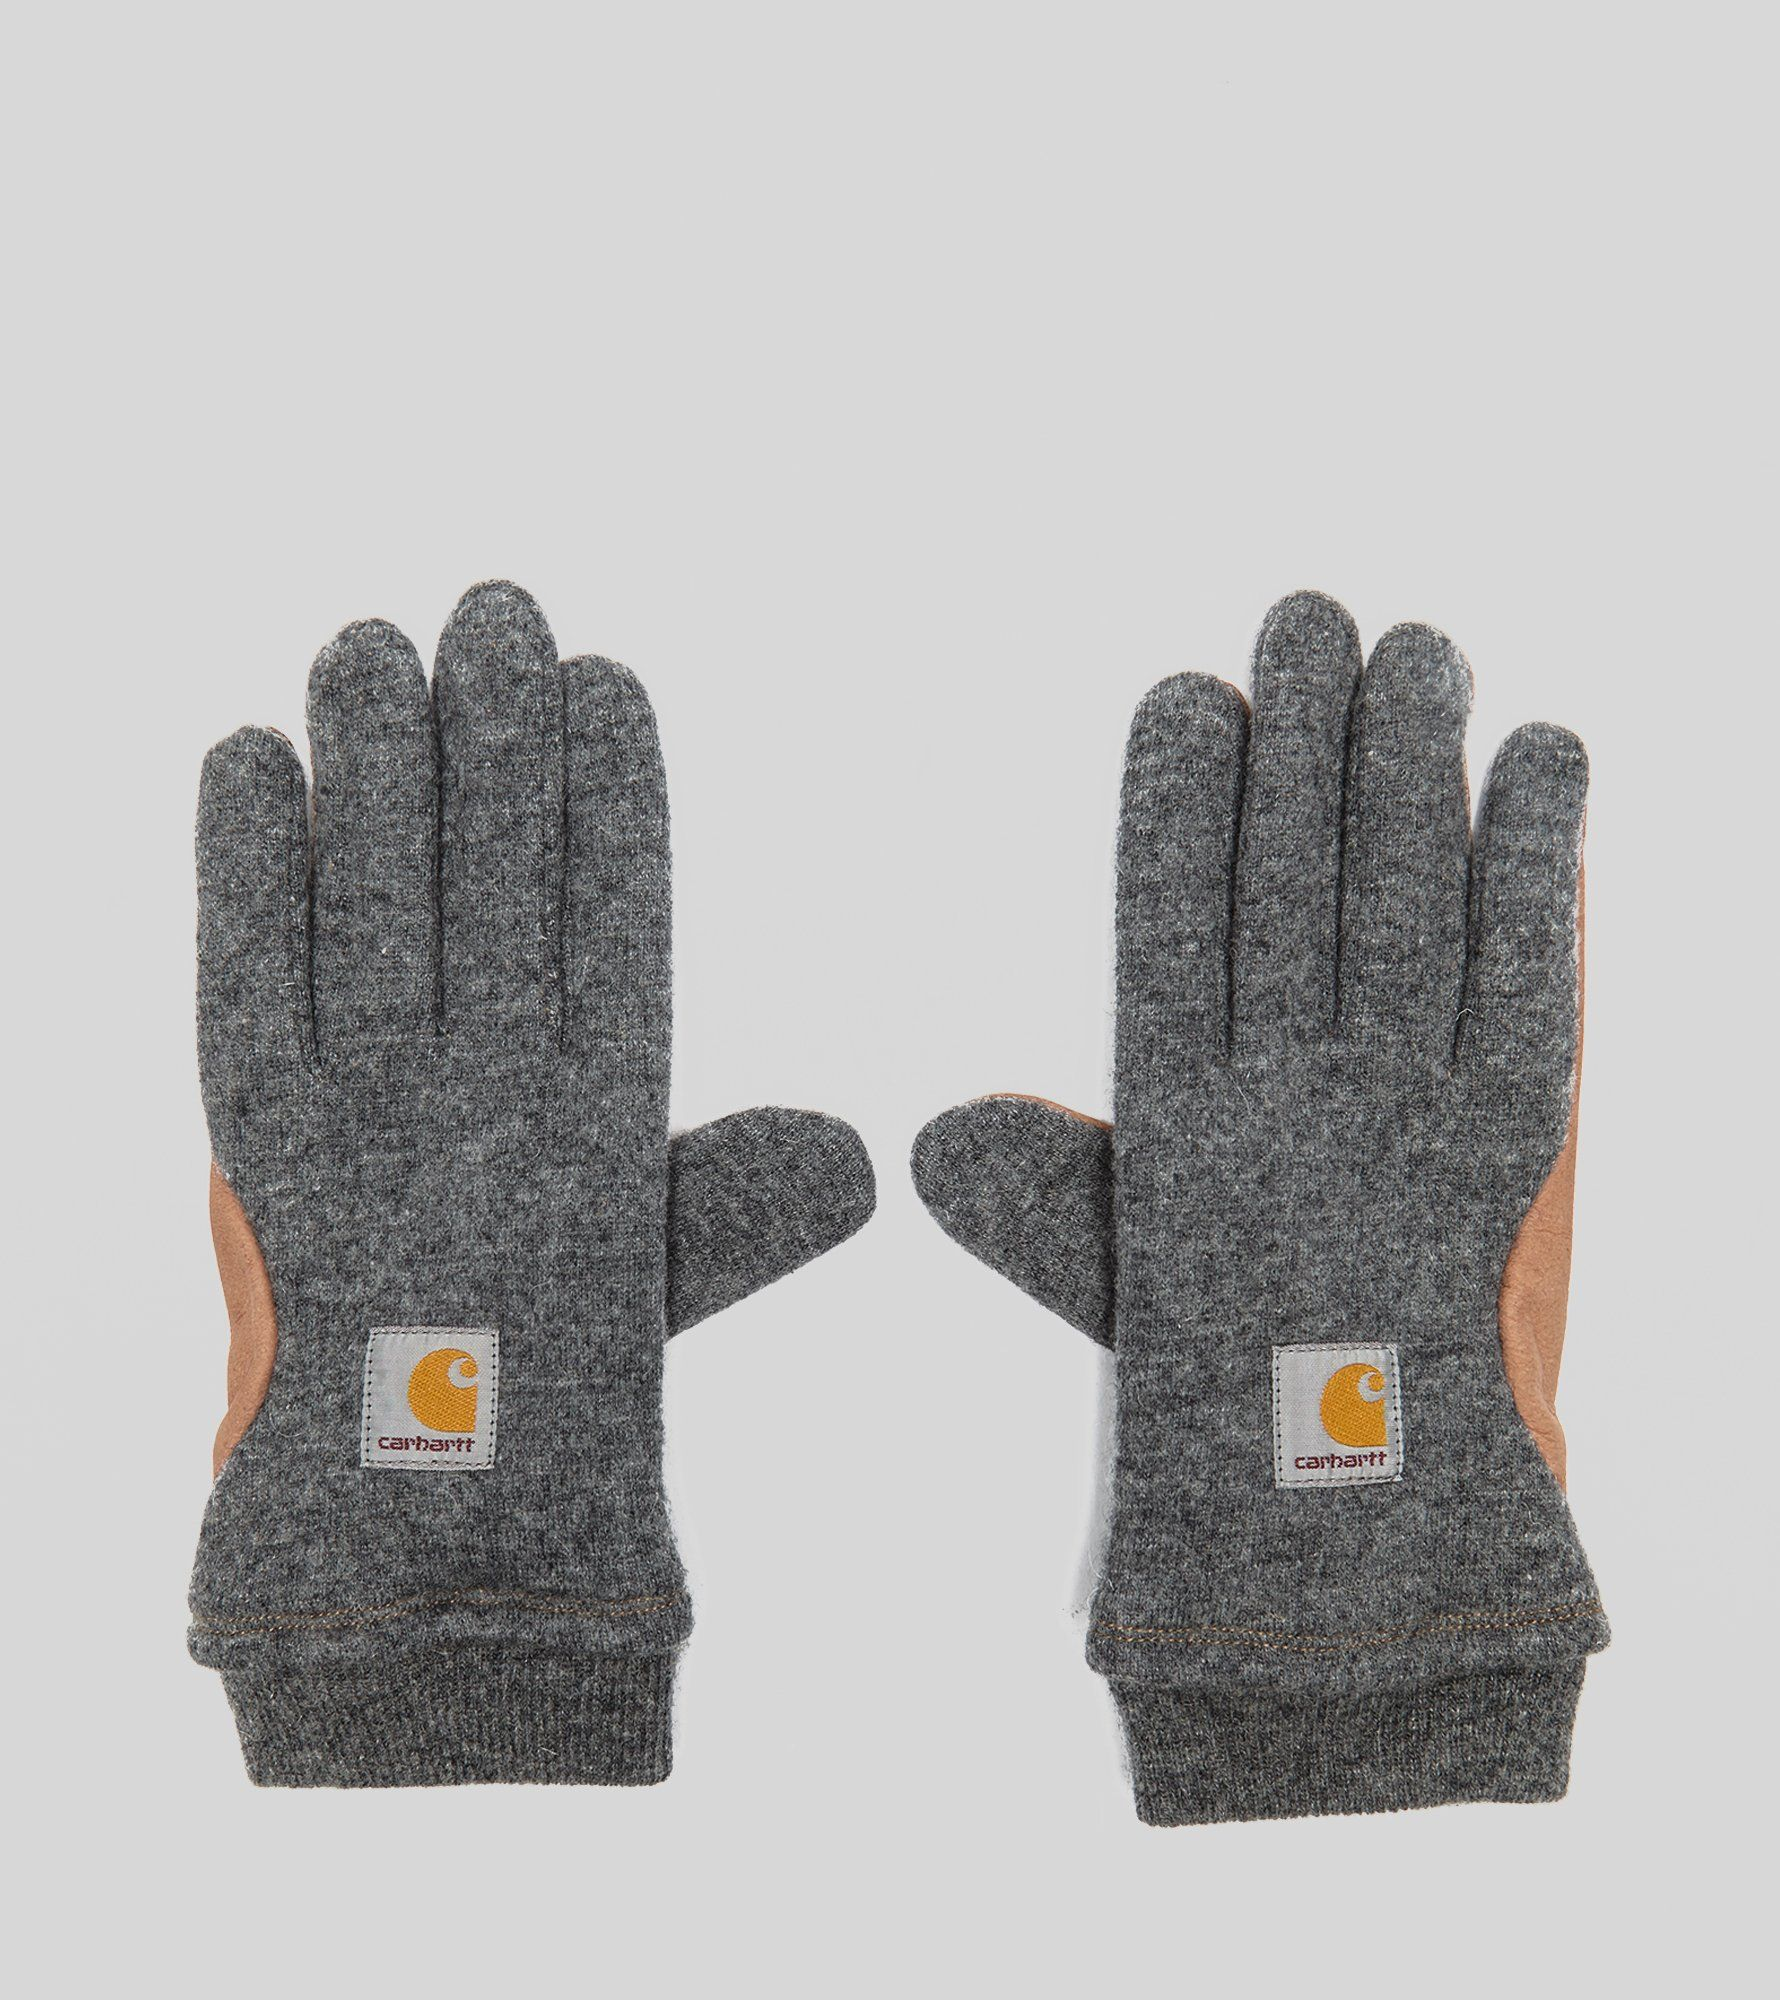 Mens sizes in gloves - Carhartt Wip Foster Gloves